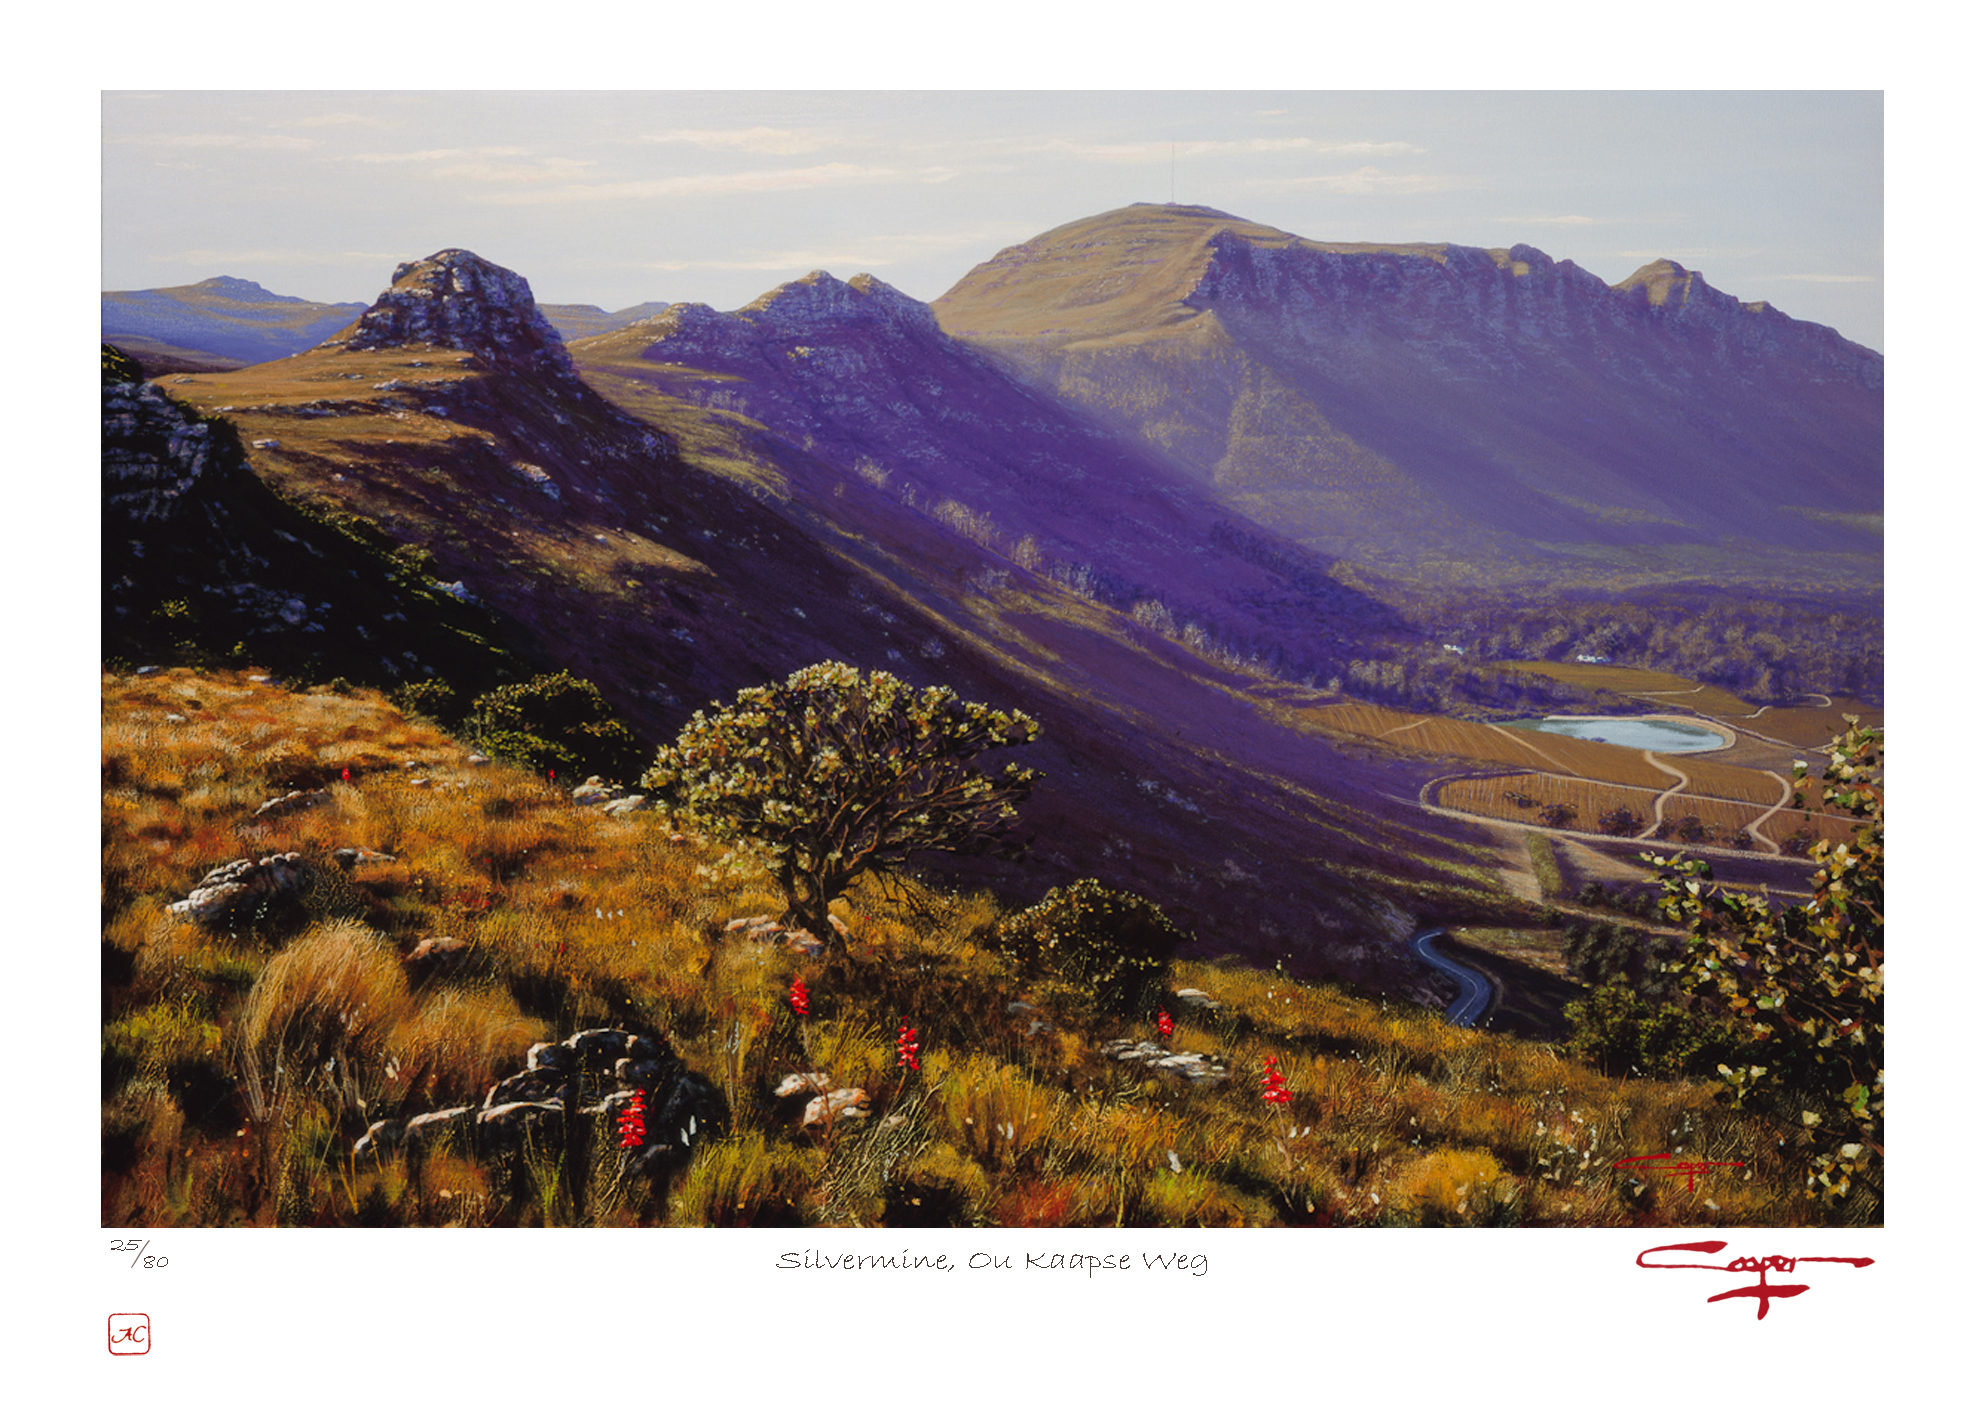 The Studio Art Gallery - Andrew Cooper - Silvermine, Ou Kaapse Weg Limited Edition Print